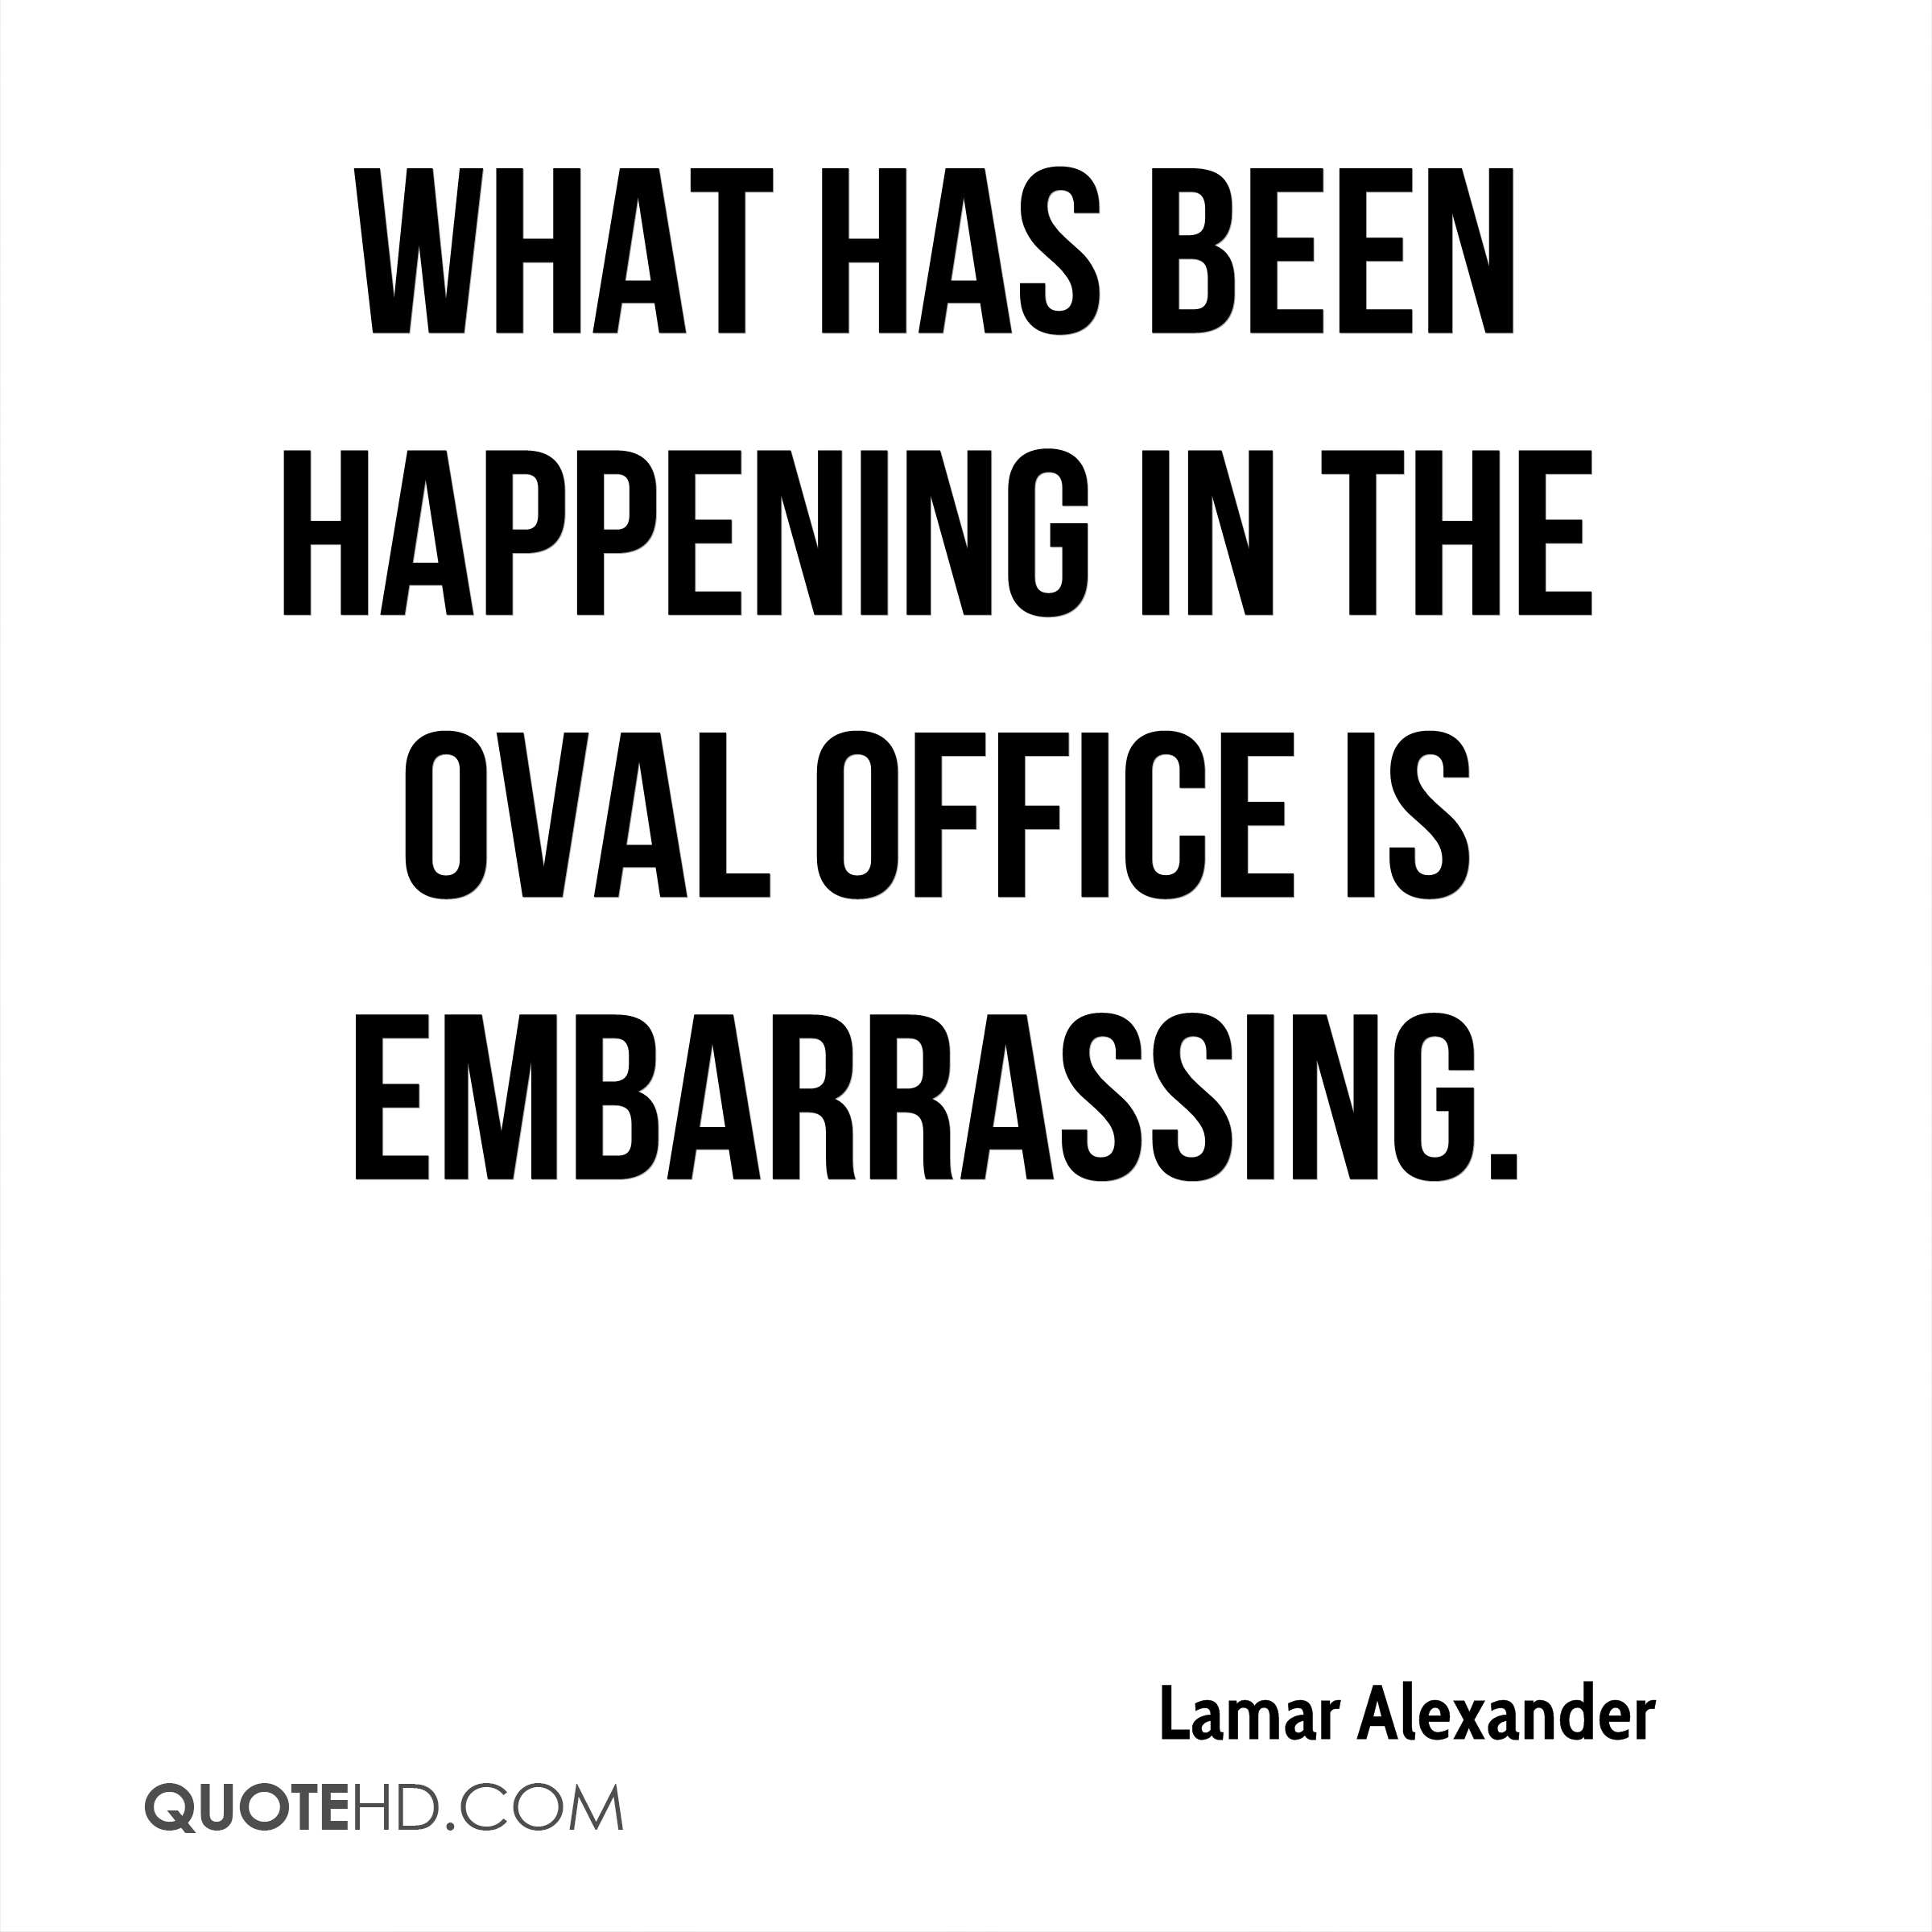 What has been happening in the Oval Office is embarrassing.